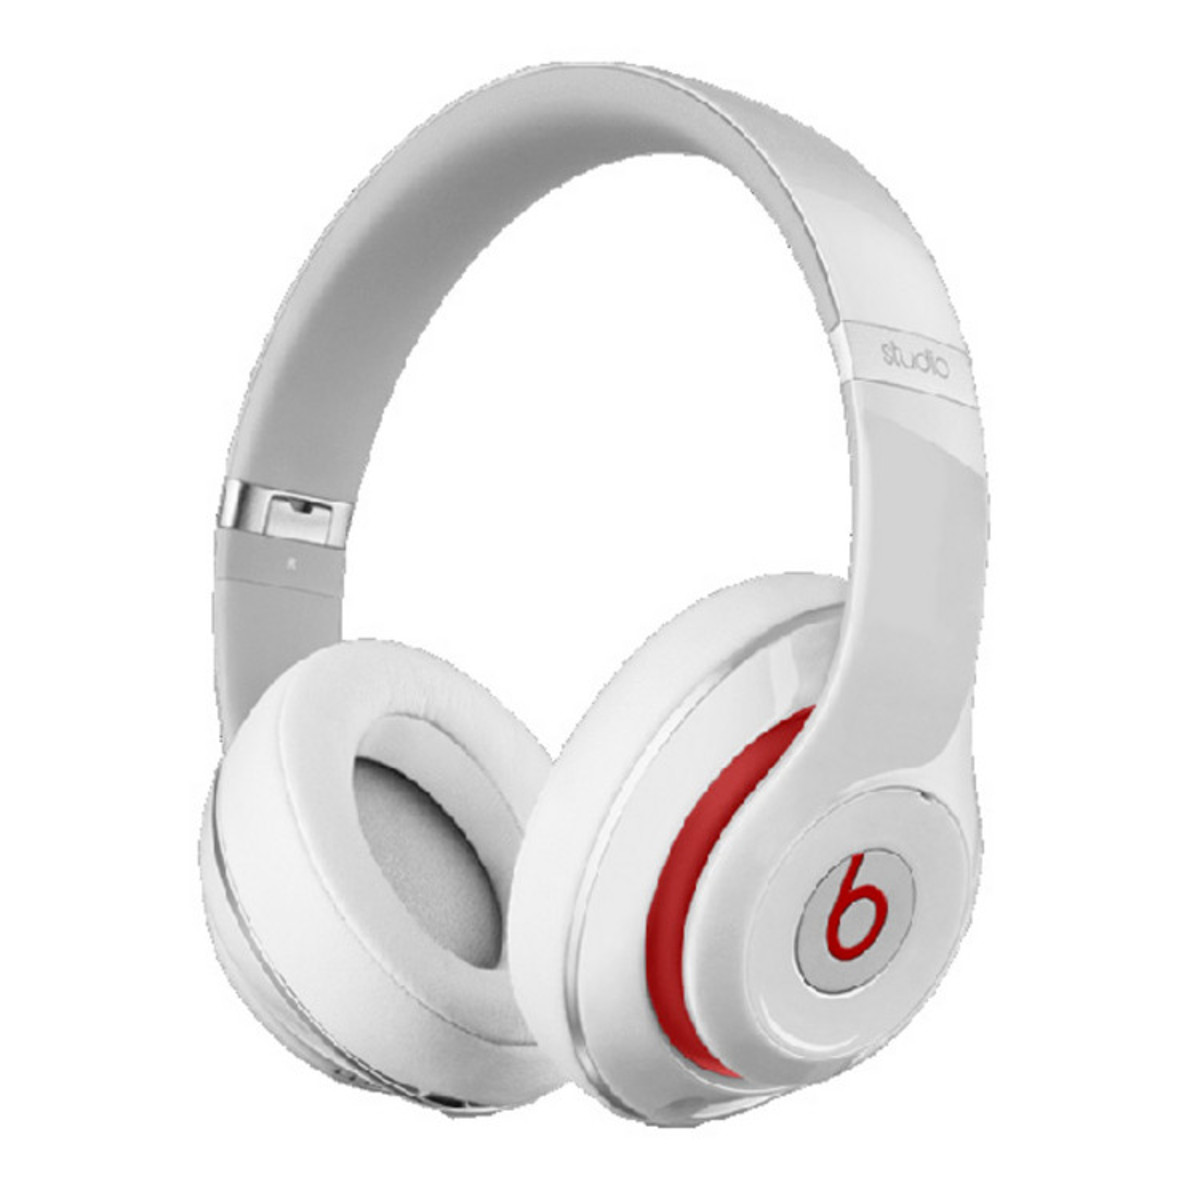 Beats by Dre Studio 2.0 Over-Ear Headphones 470af0a969c3